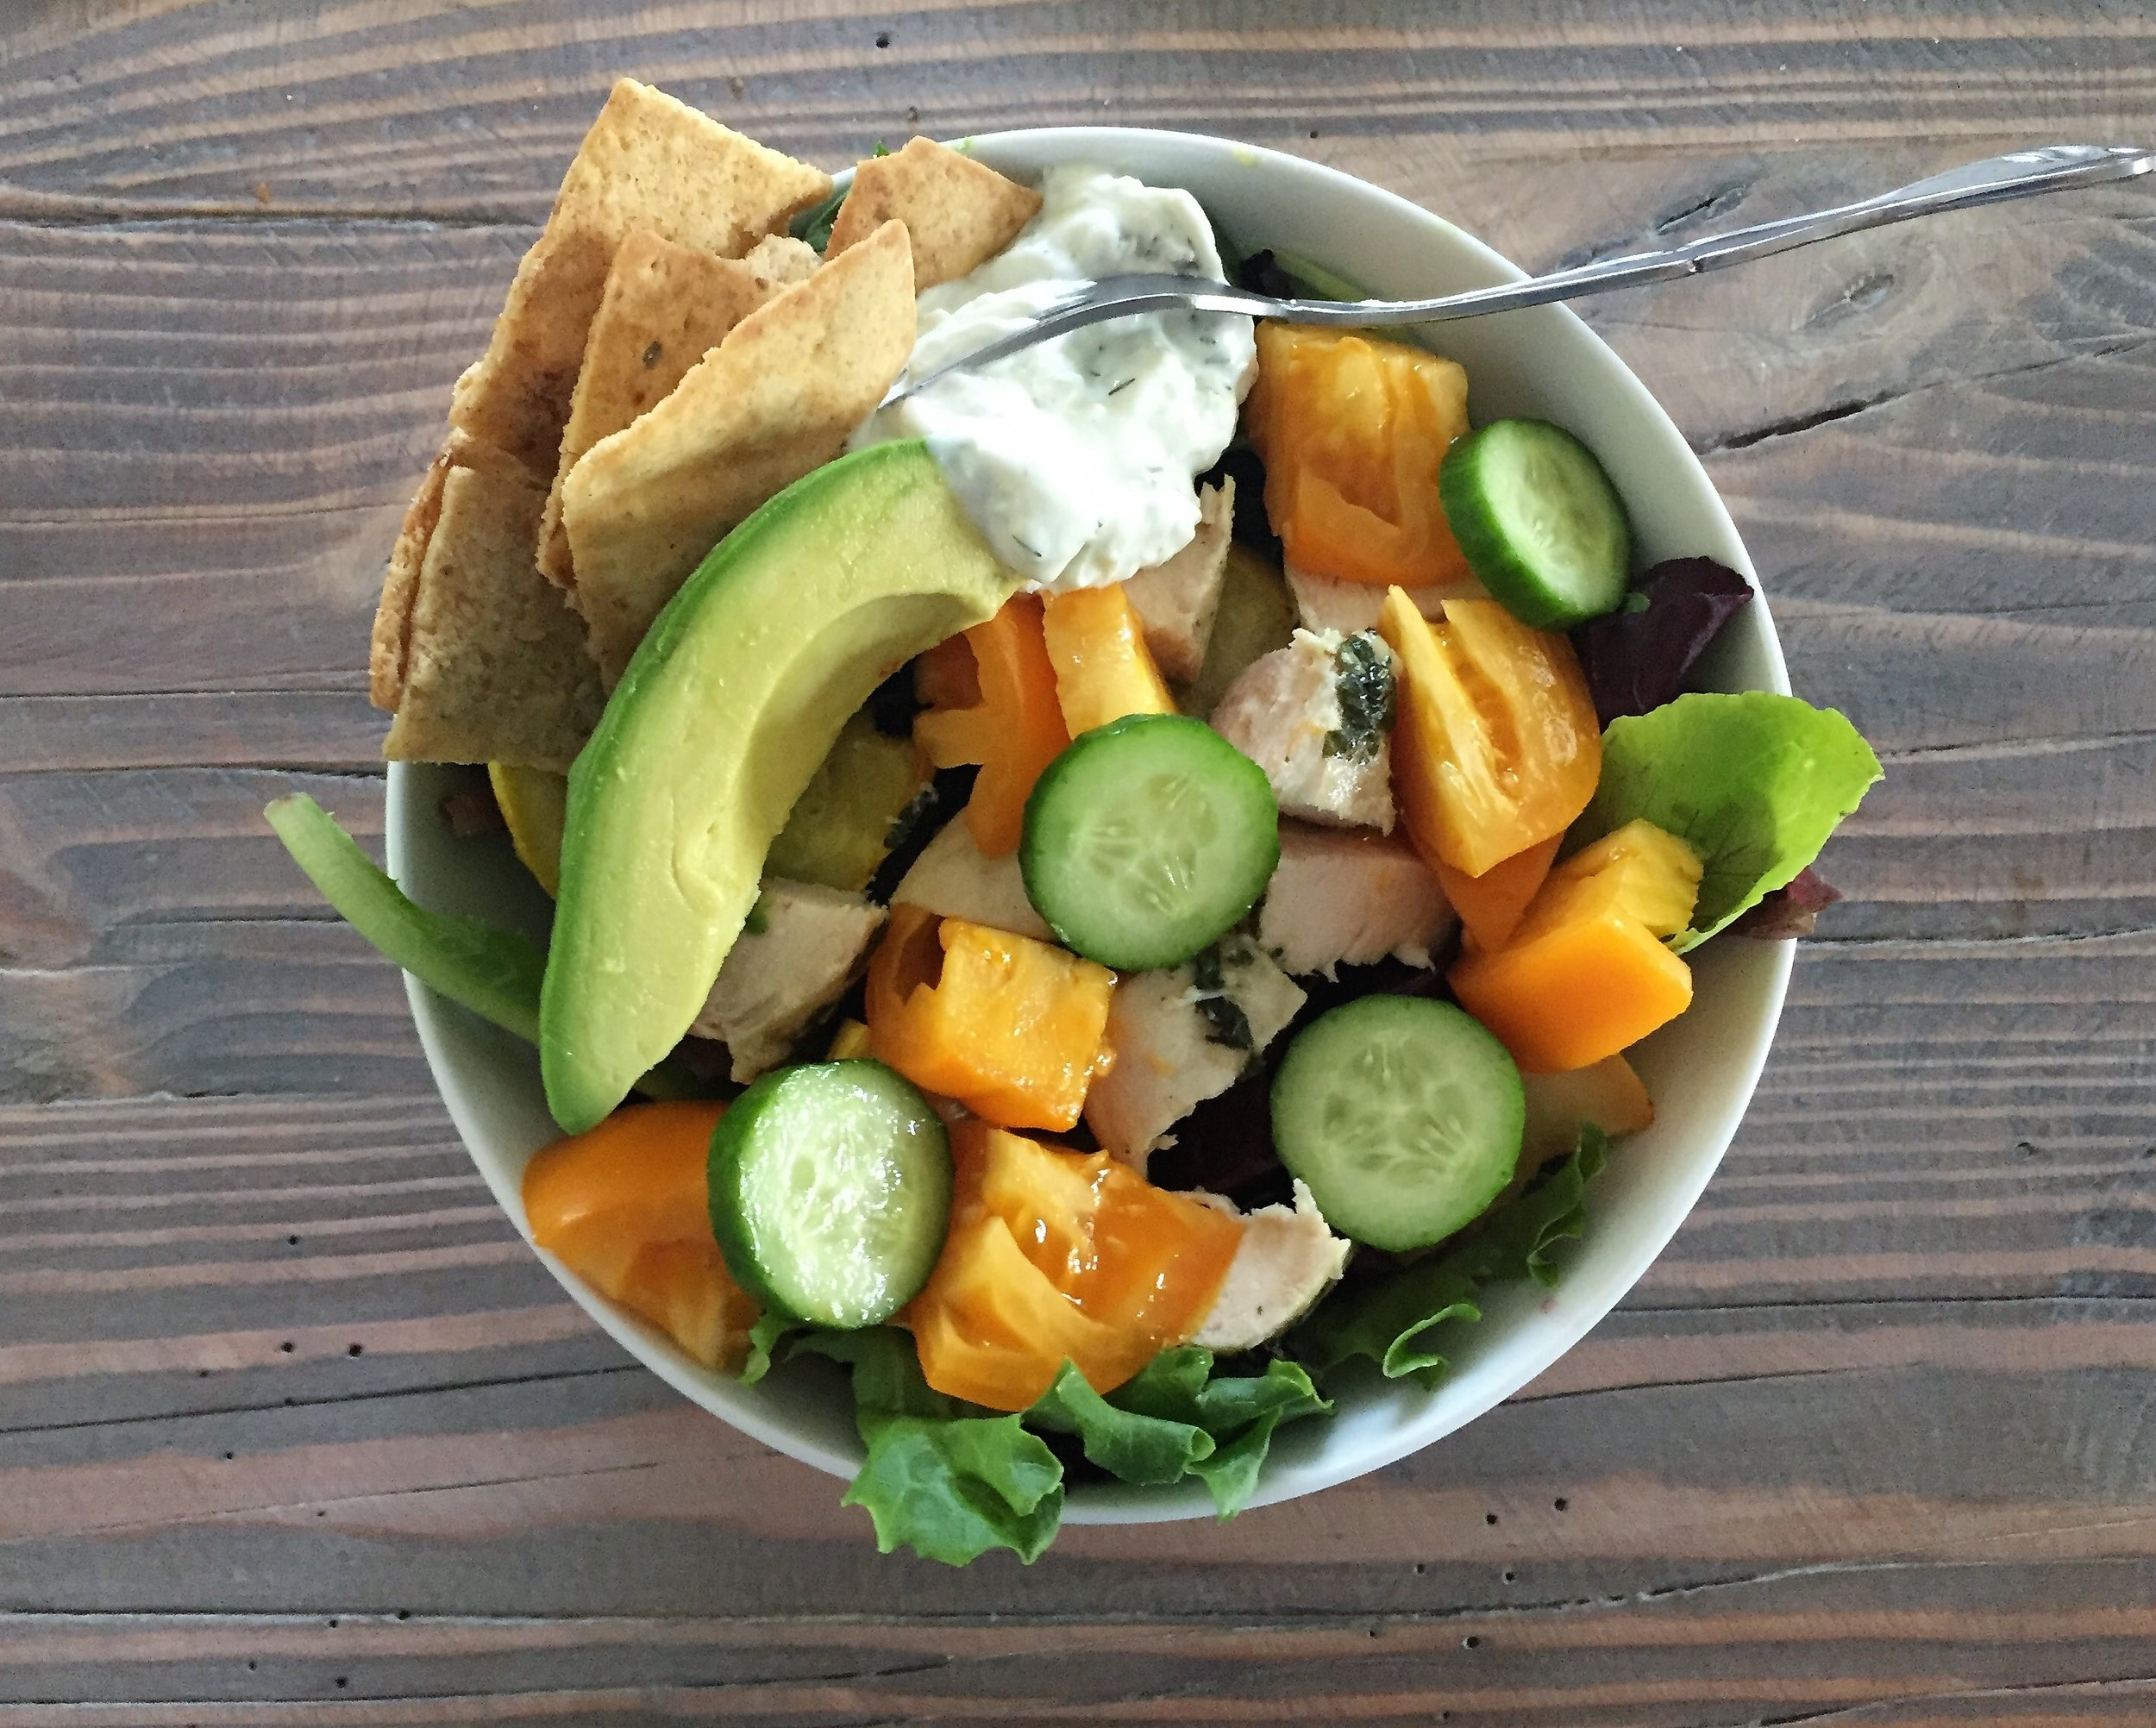 This salad started off with spring mix, tomatoes, cucumbers and squash. I had leftover basil chicken as a protein, and my fats were avocado and homemade tzatziki. I just used some vinegar as a dressing since I had two fats. (And some whole grain pita chips on the side!)